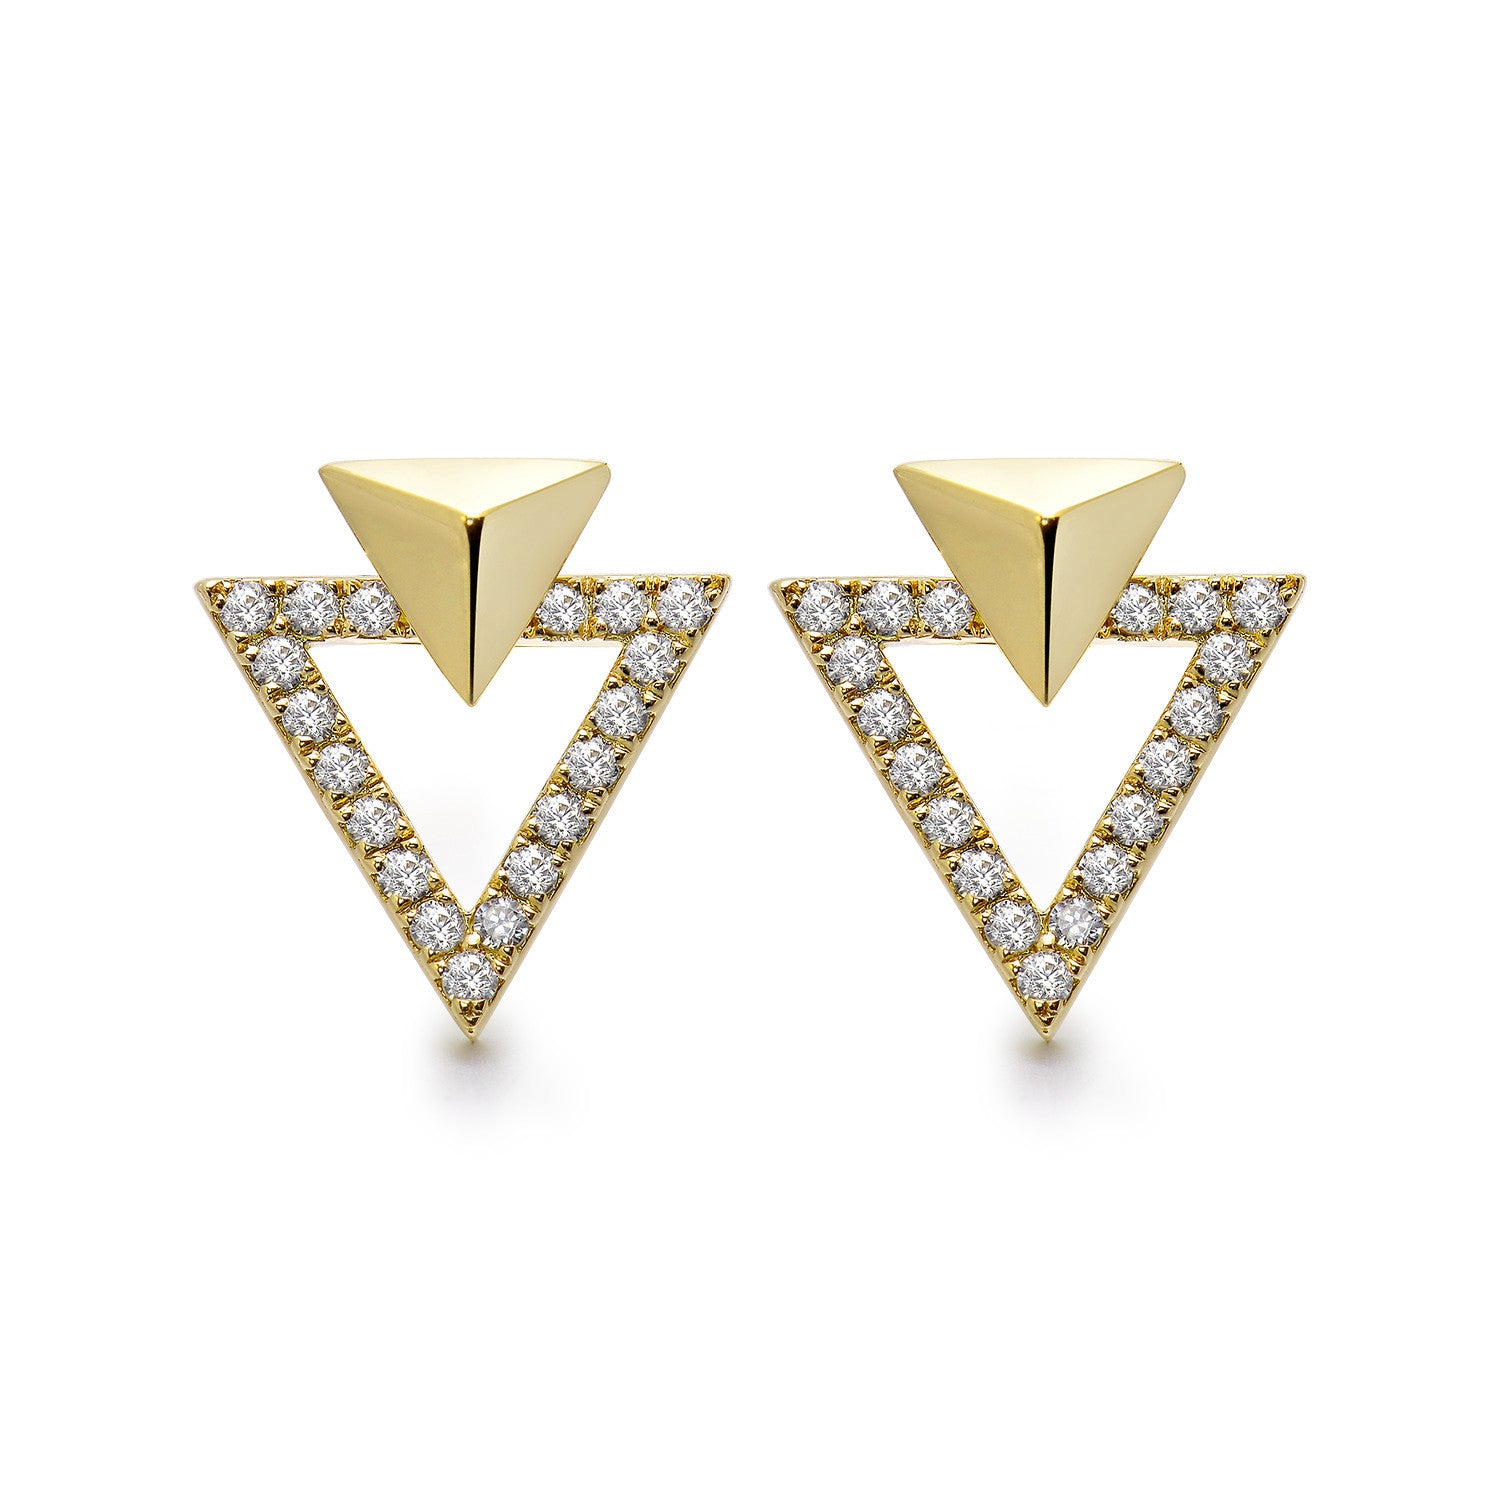 14k Gold Diamond Triangle Stud Earrings